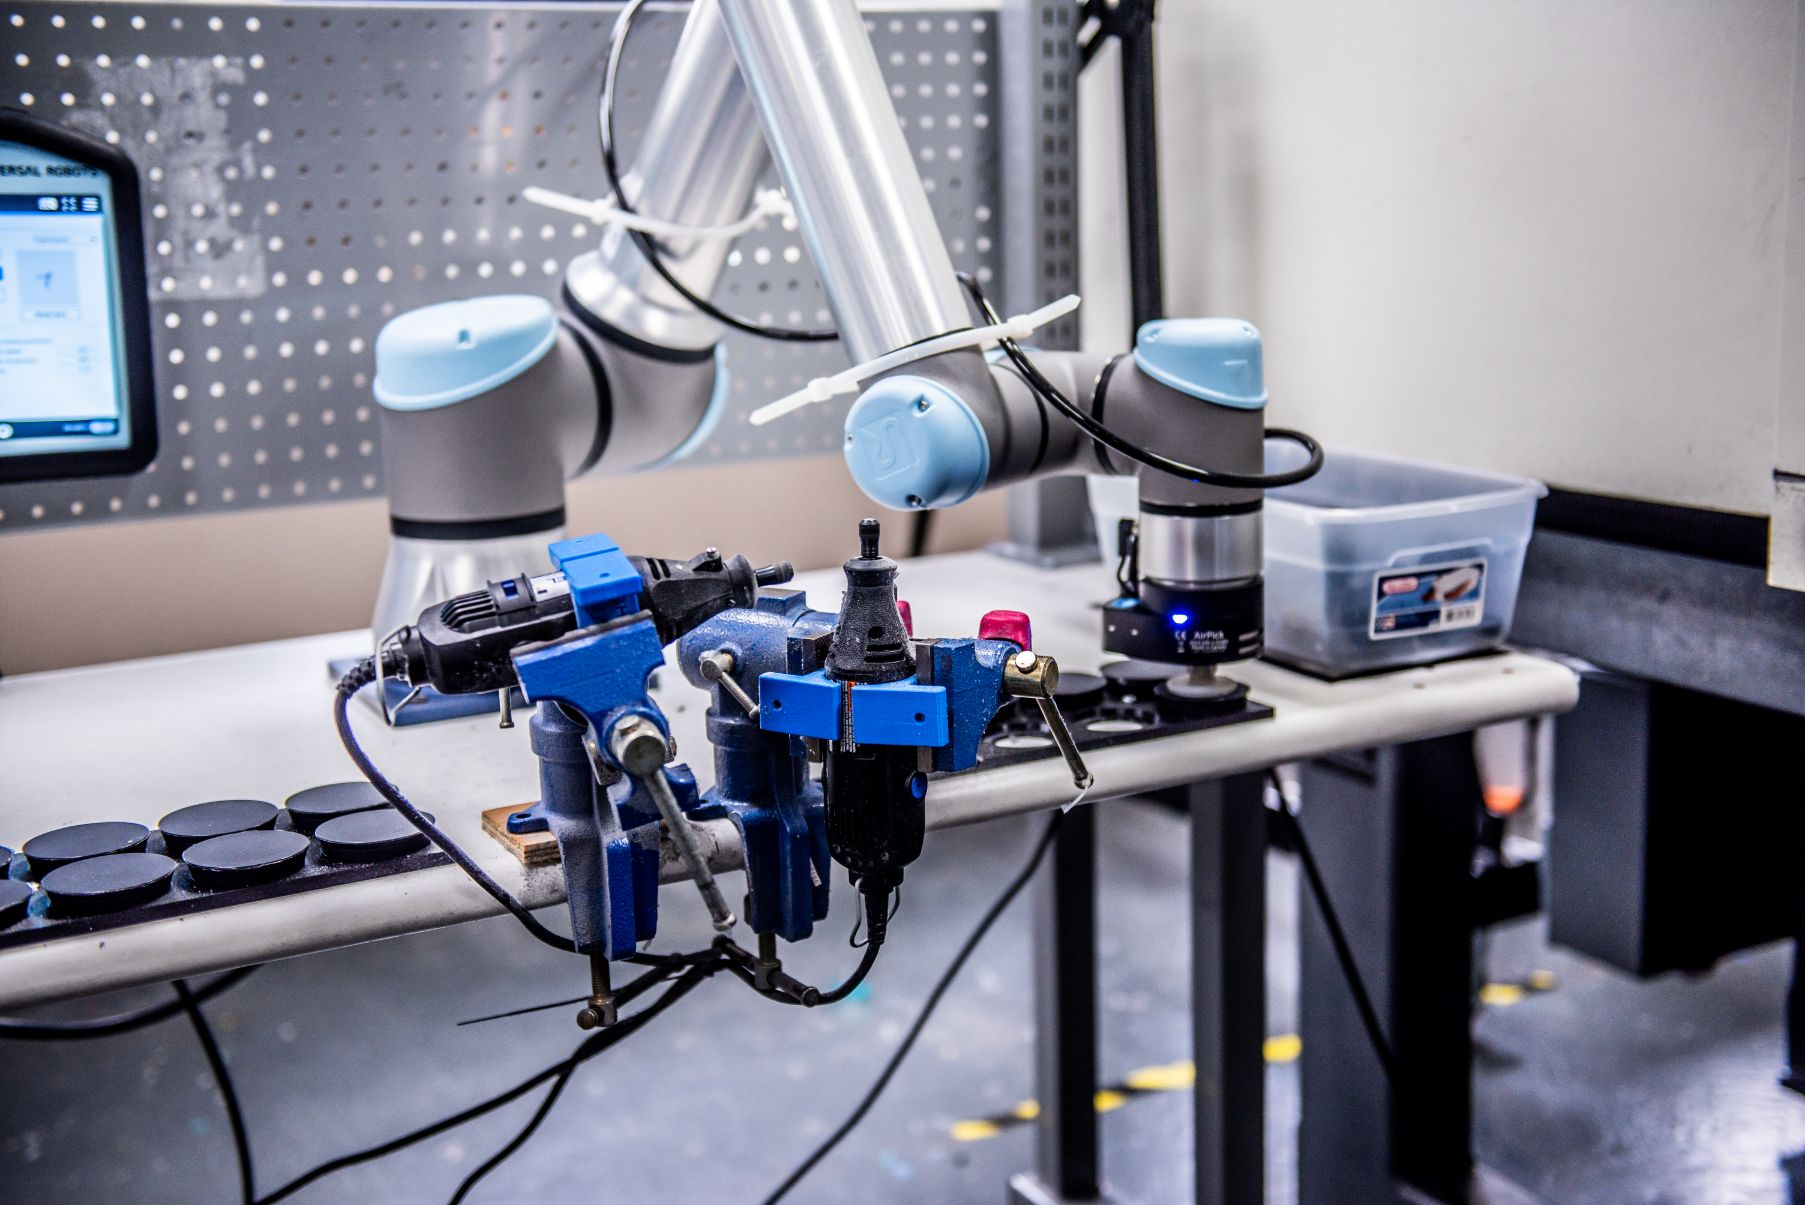 Extreme Molding Robot for efficiency quality and sustainability practices